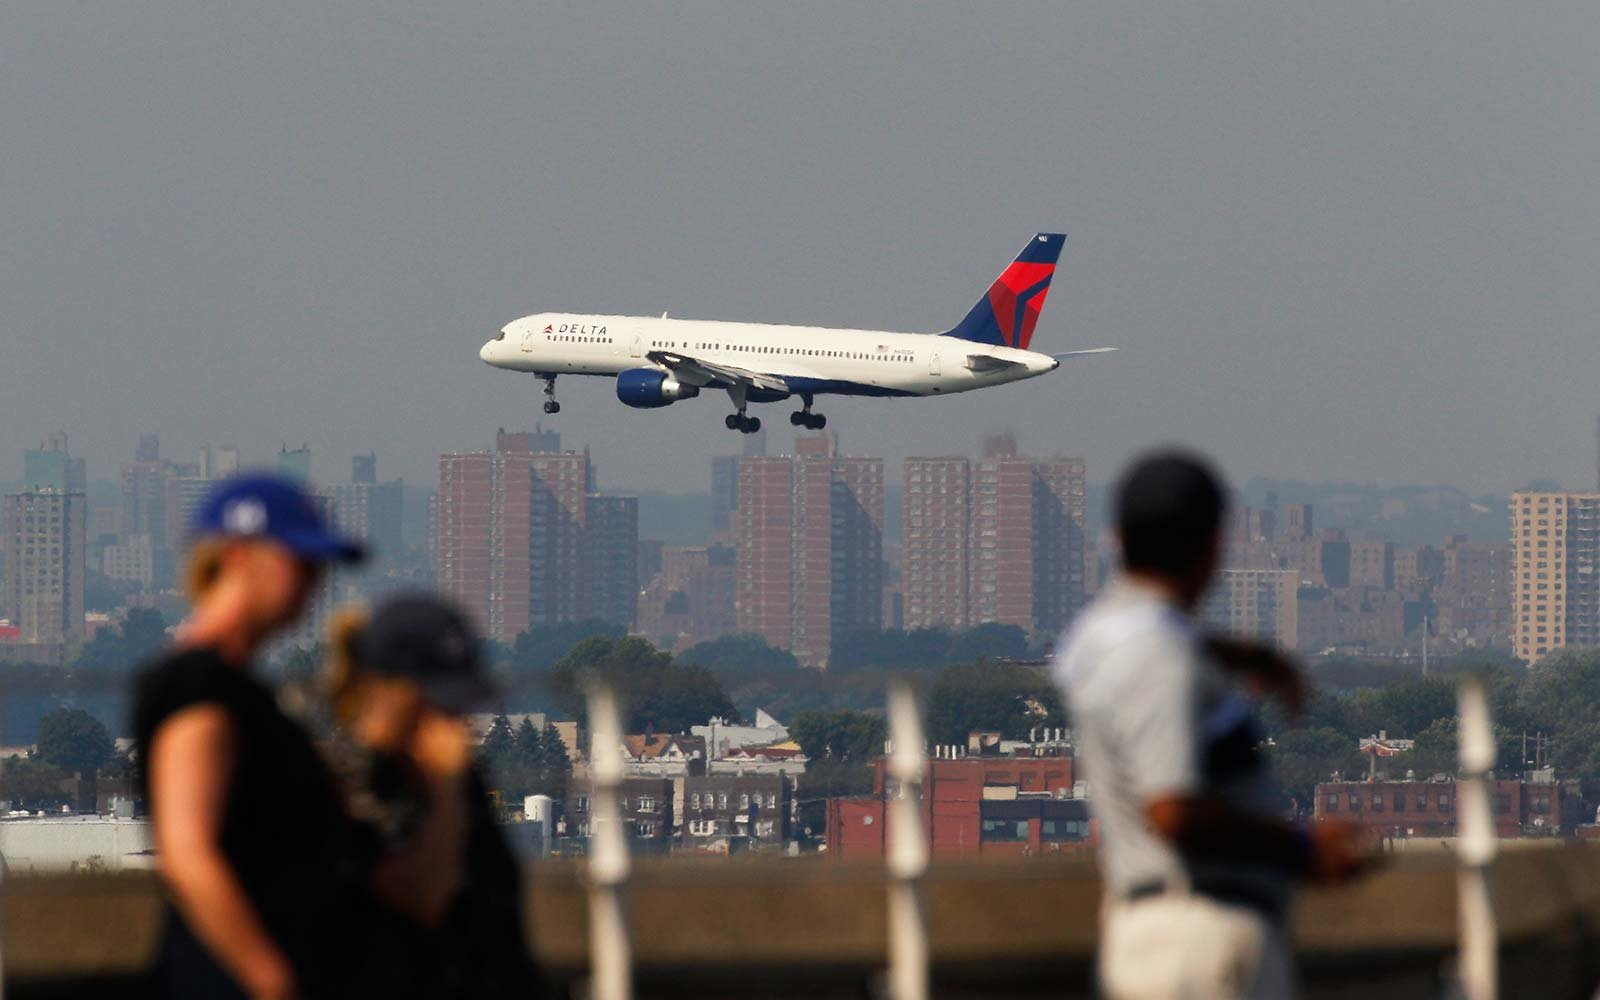 Delta flight makes emergency bathroom stop after toilets stop working